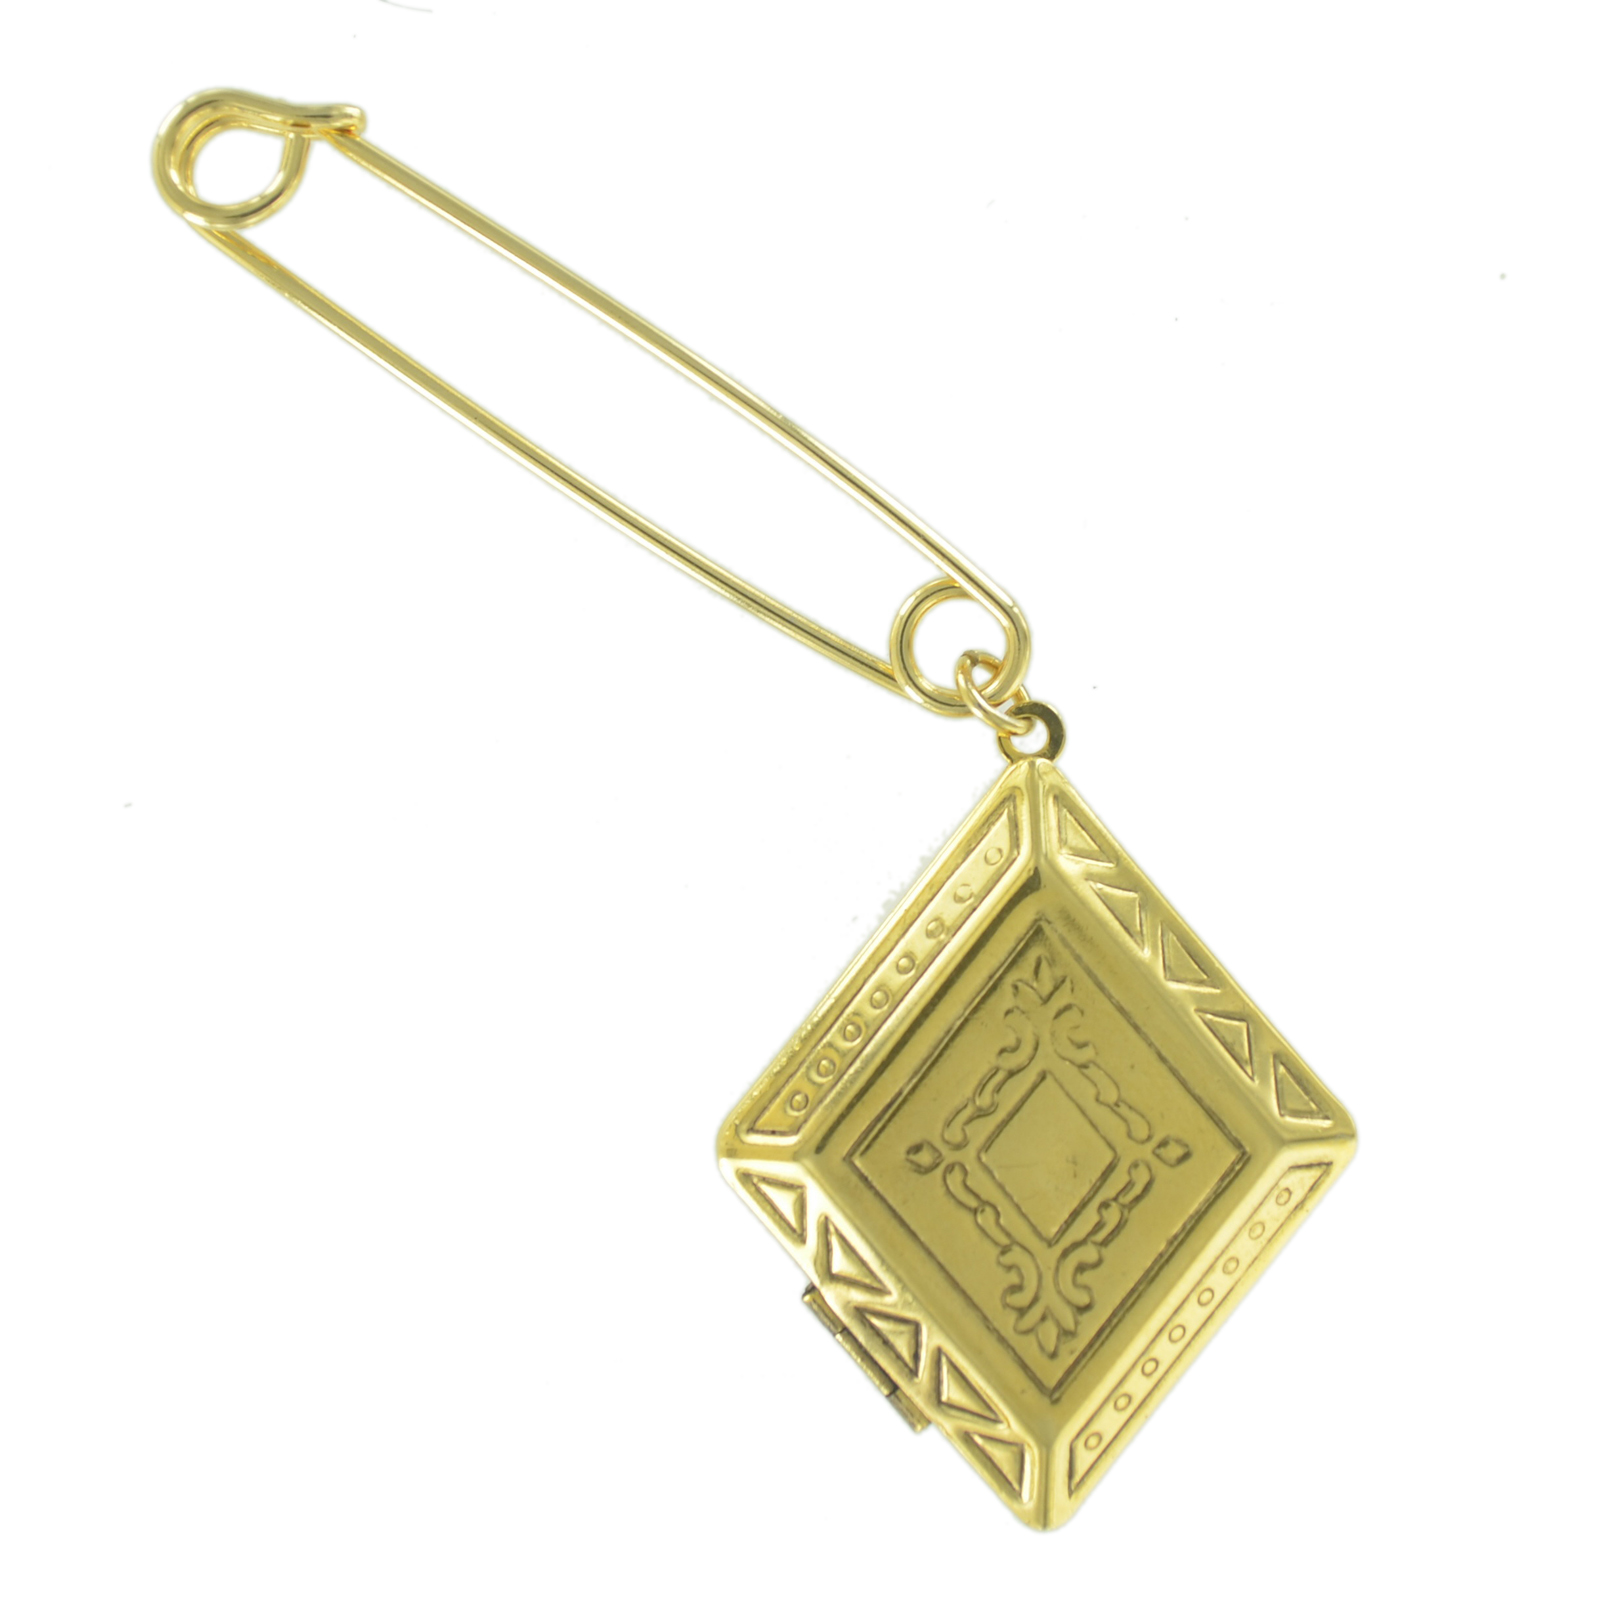 """Safety Pin Brooch 2"""" Antiqued Gold Tone Diamond Shaped Photo Locket Charm Dangle End by Ky & Co"""